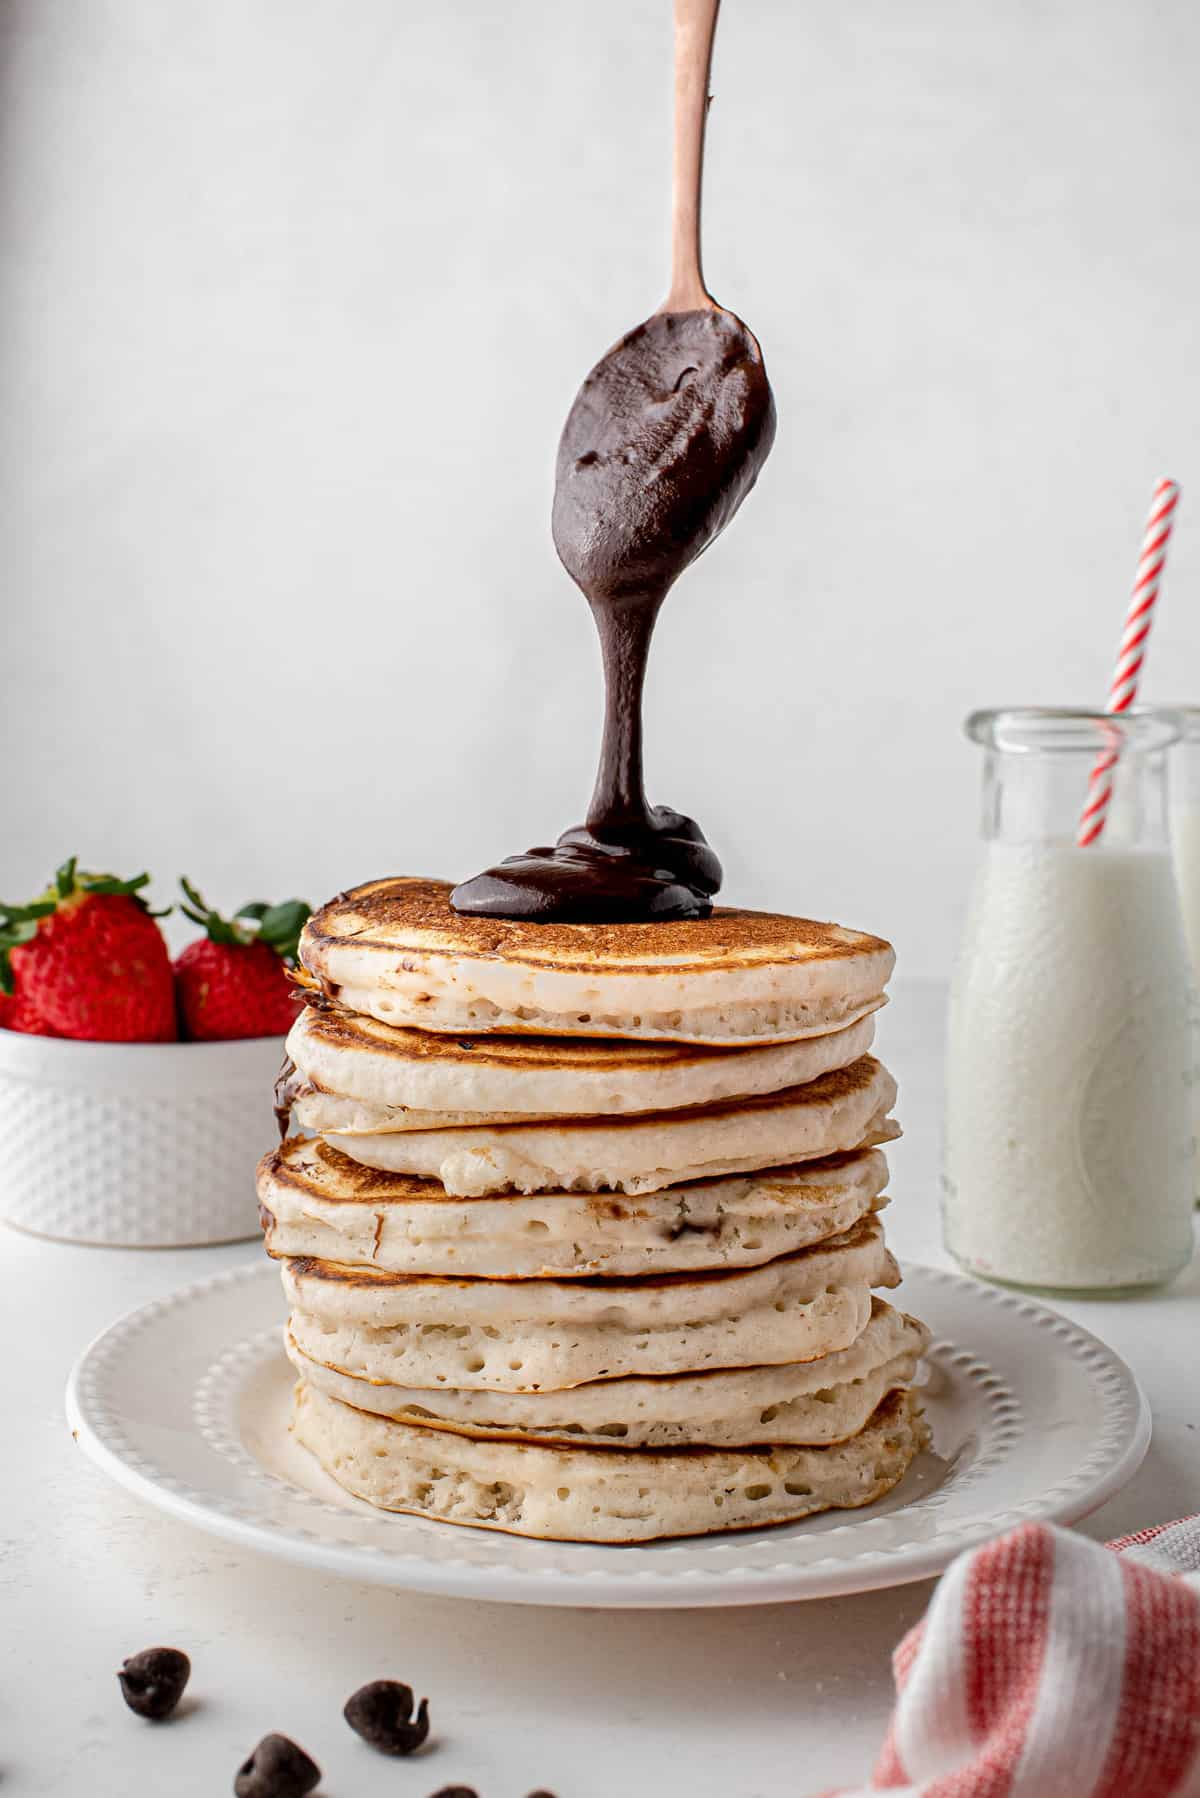 Nutella being spooned on a tall stack of pancakes.